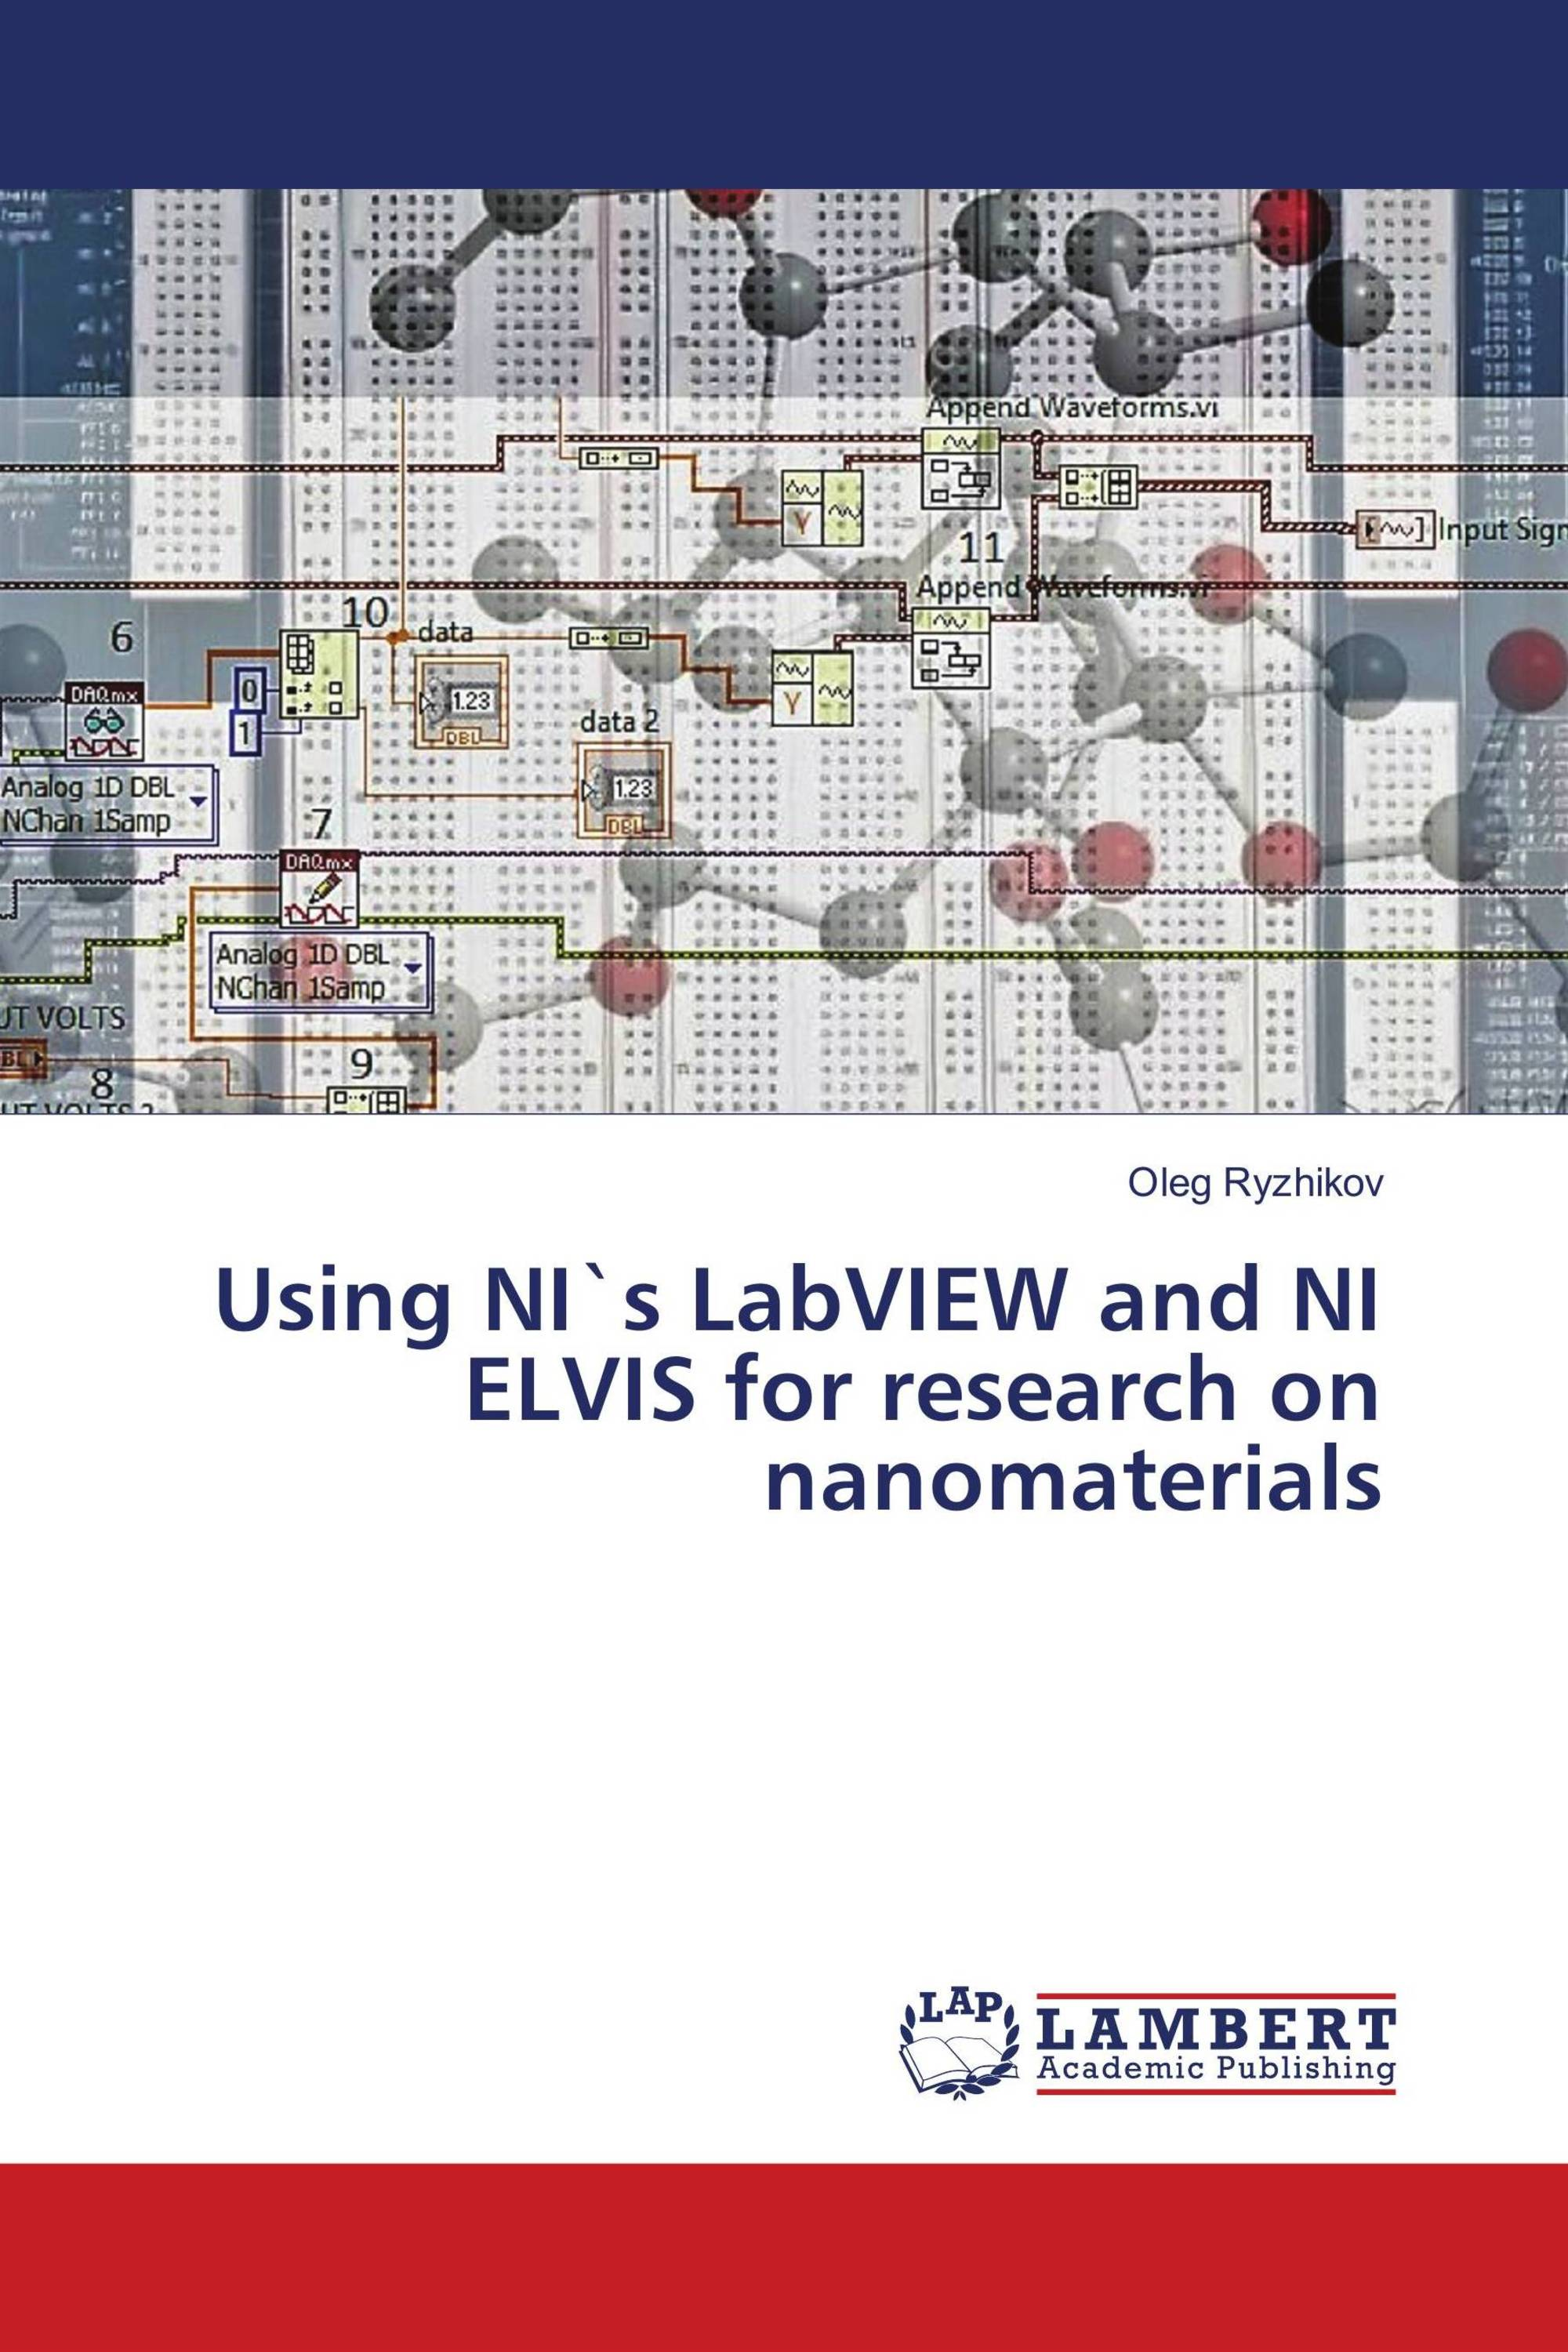 Using NI`s LabVIEW and NI ELVIS for research on